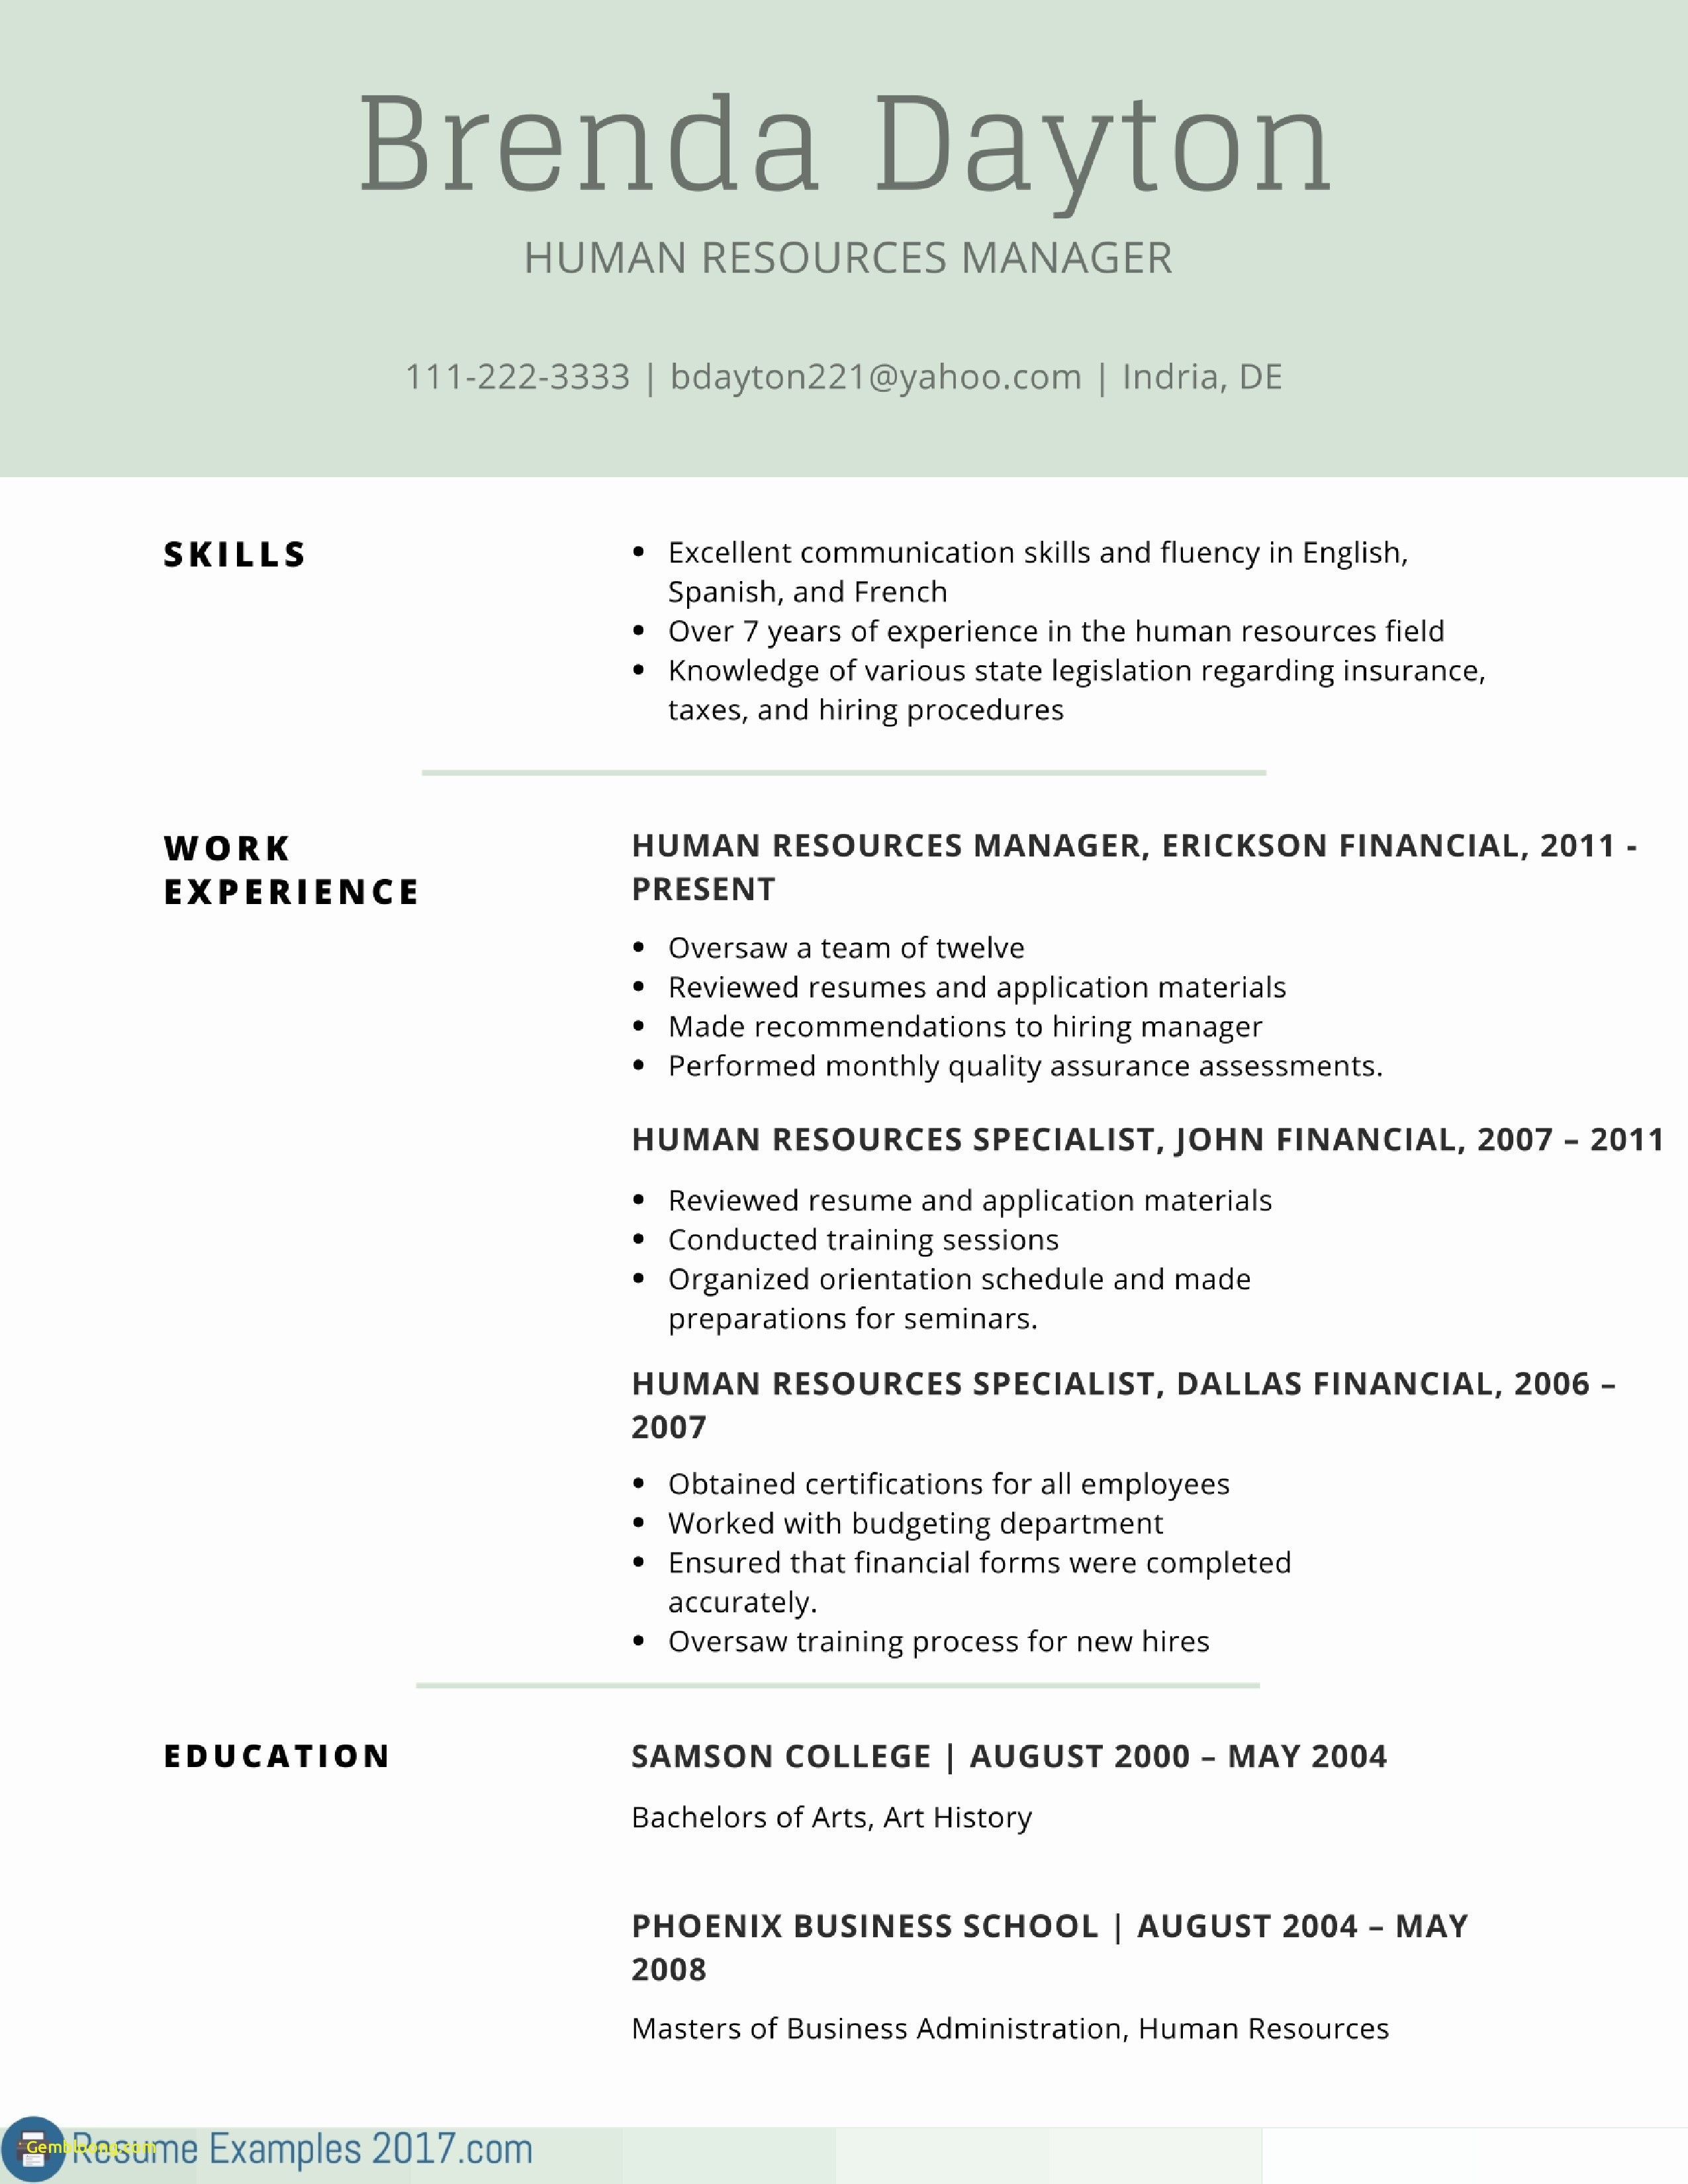 hairdresser resume template example-Hairdressing Resume Template Best Resume For Hairdresser Legalsocialmobilitypartnership 20-r